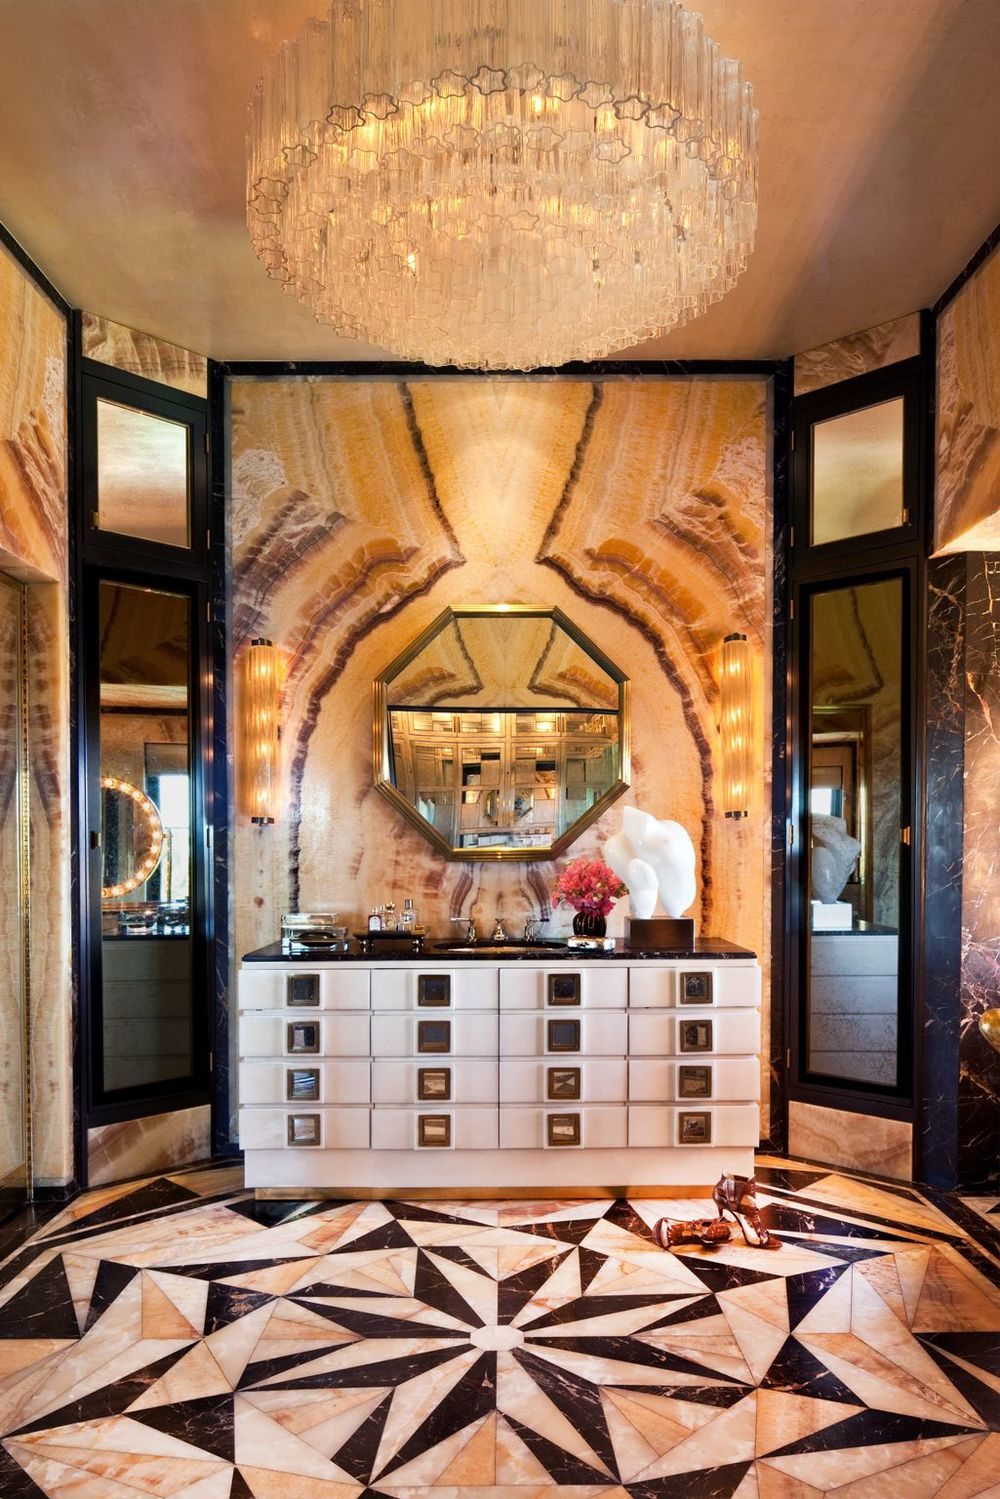 Book–matched onyx coexists with a variety of graphic marbles in this serenely timeless lady's grand bathroom.